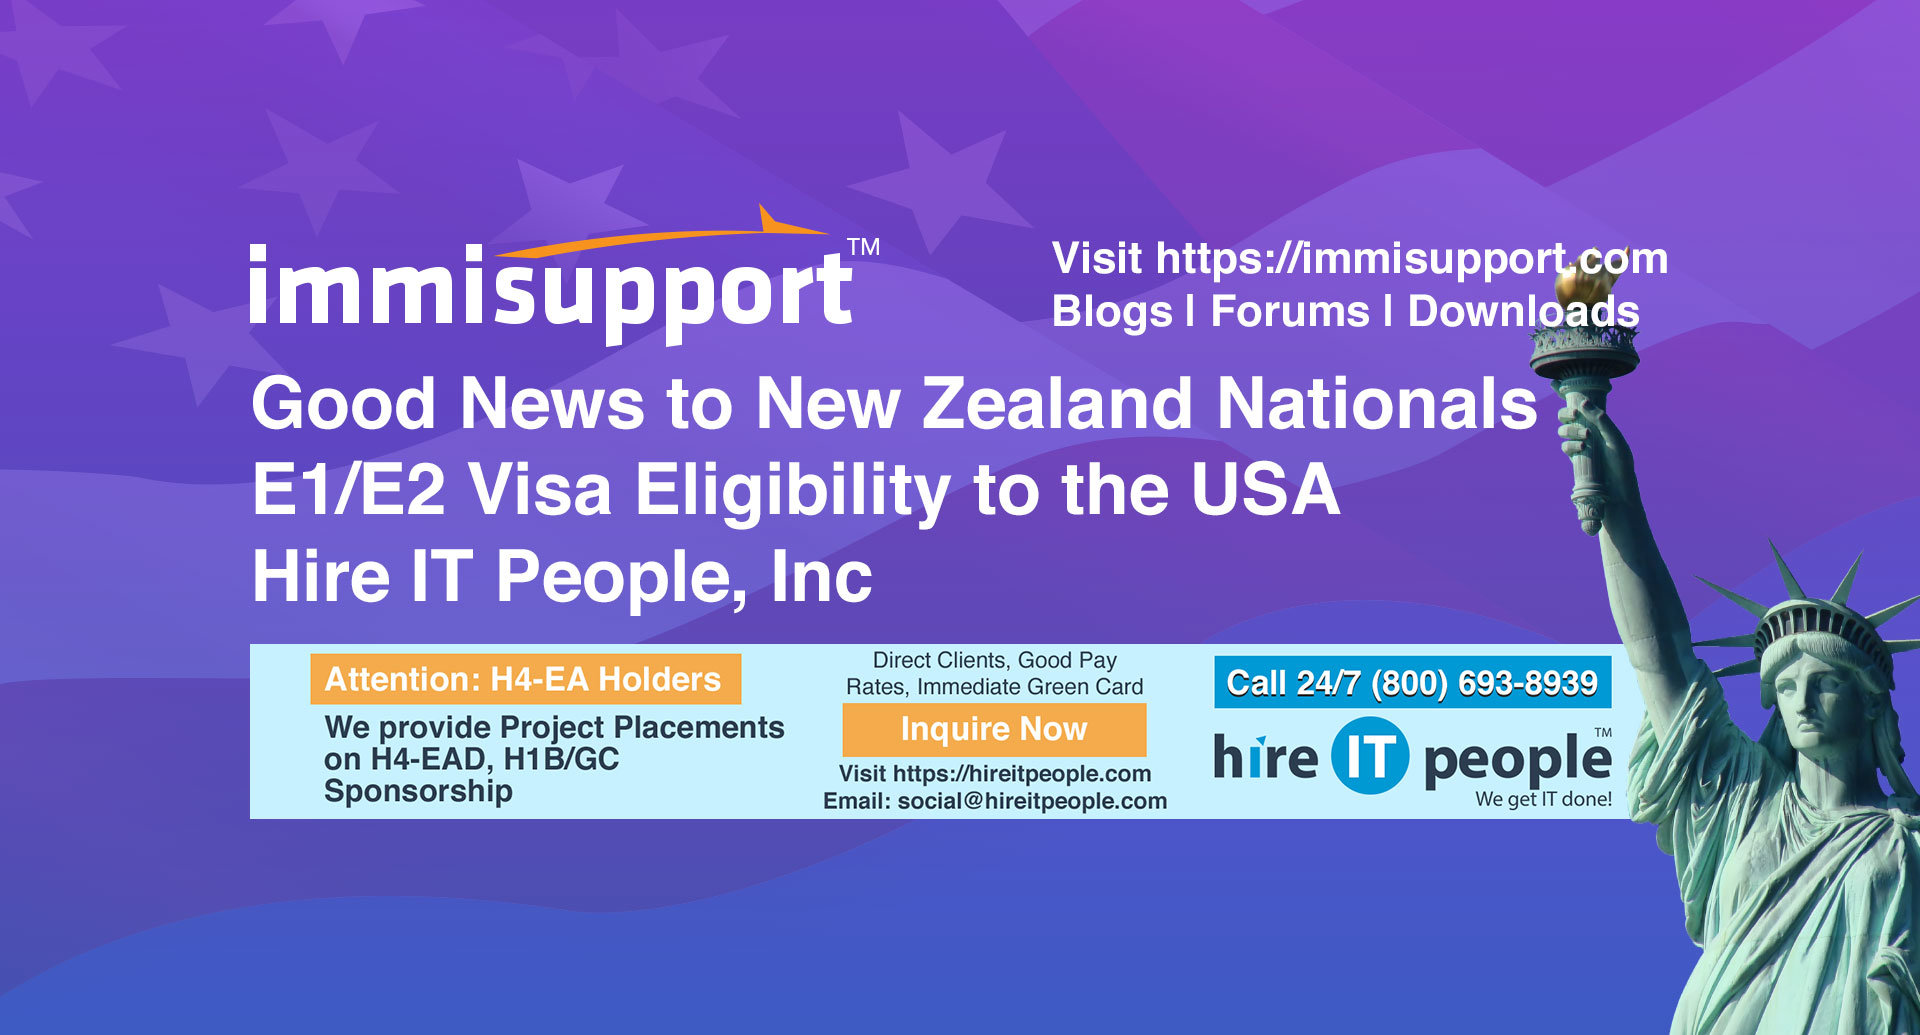 Good News to New Zealand Nationals E1/E2 Visa Eligibility to the USA